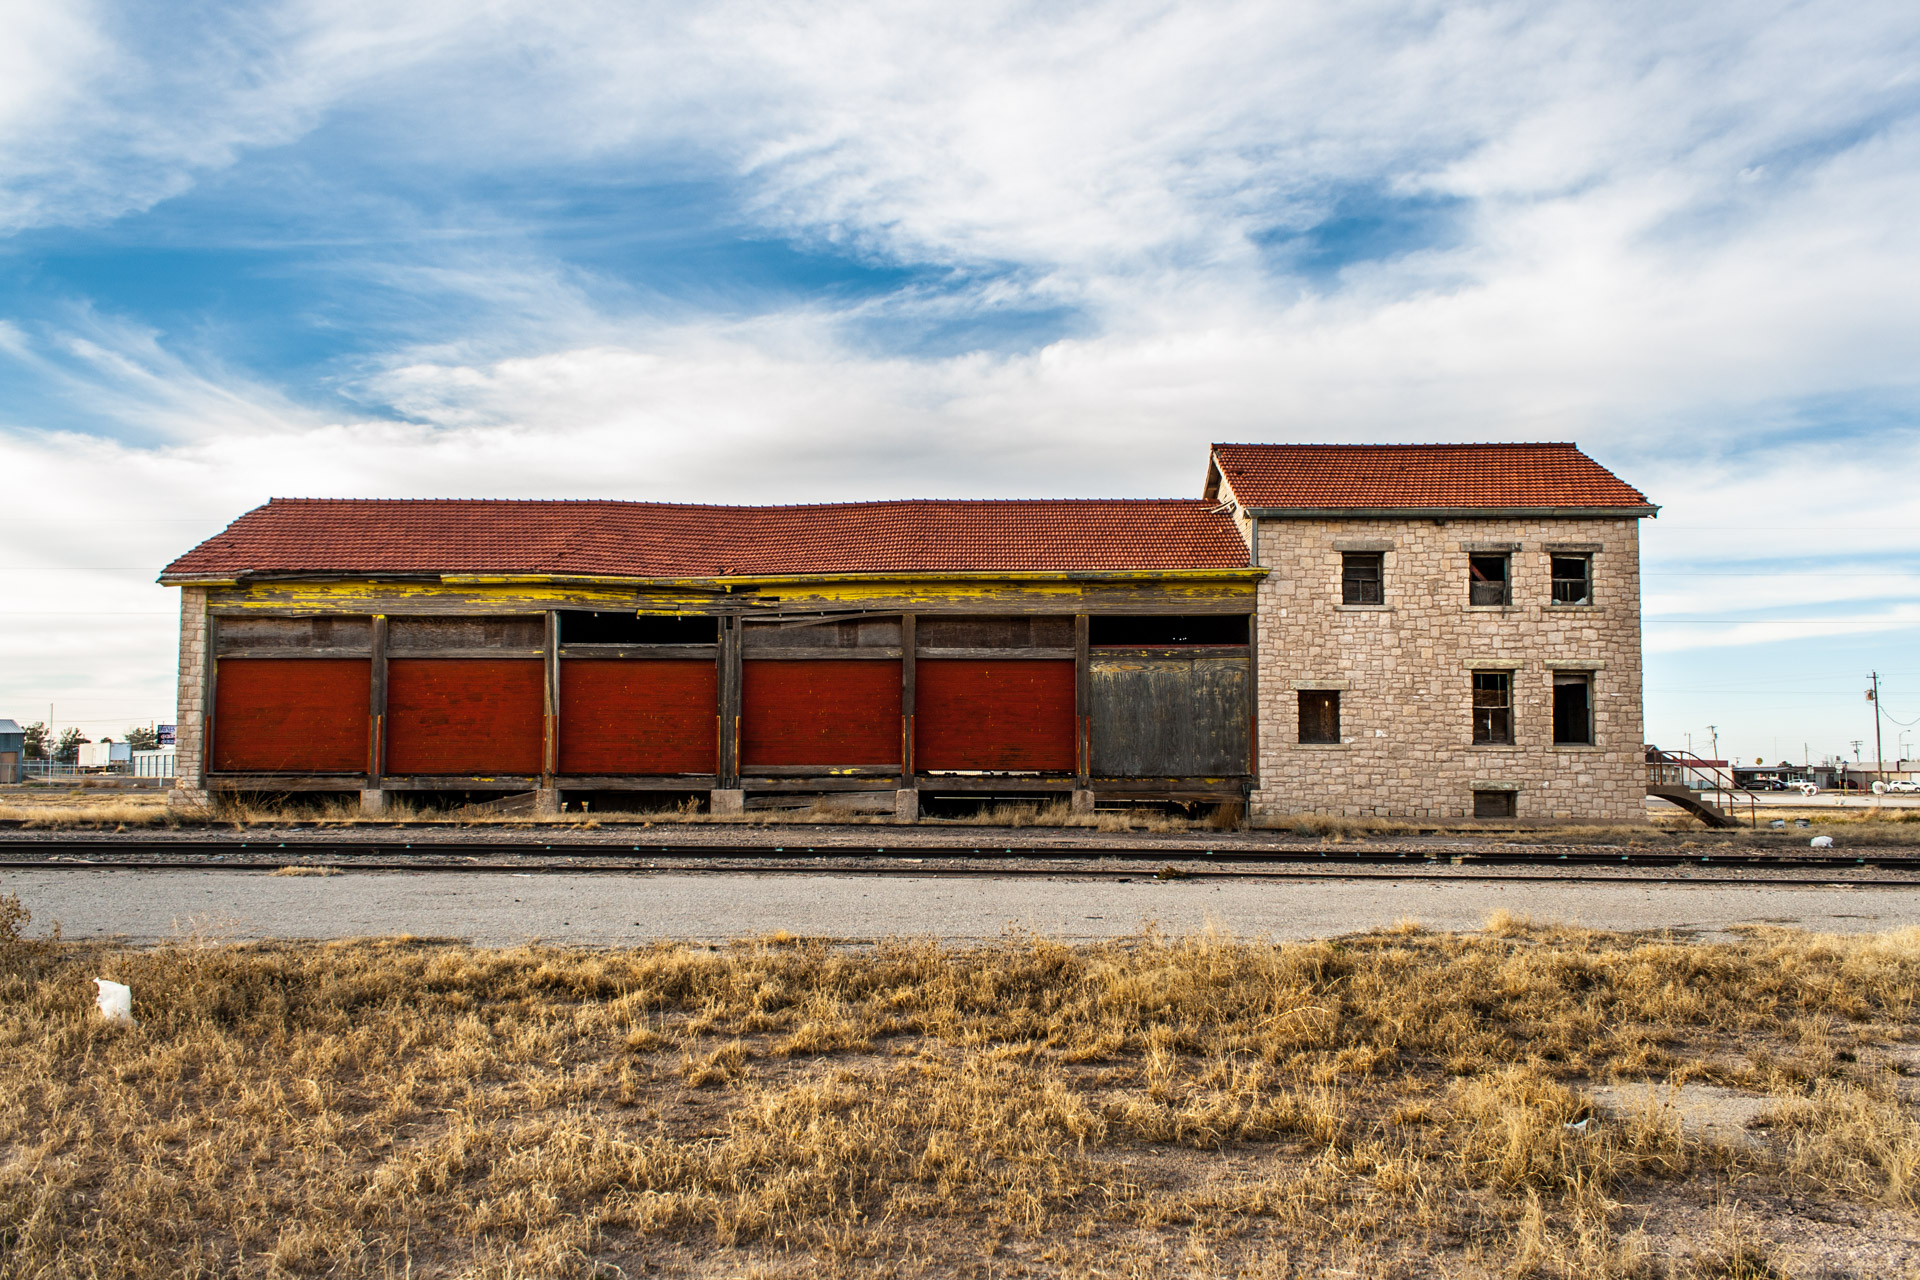 Fort Stockton, Texas - A Colorful Train Depot (back far)